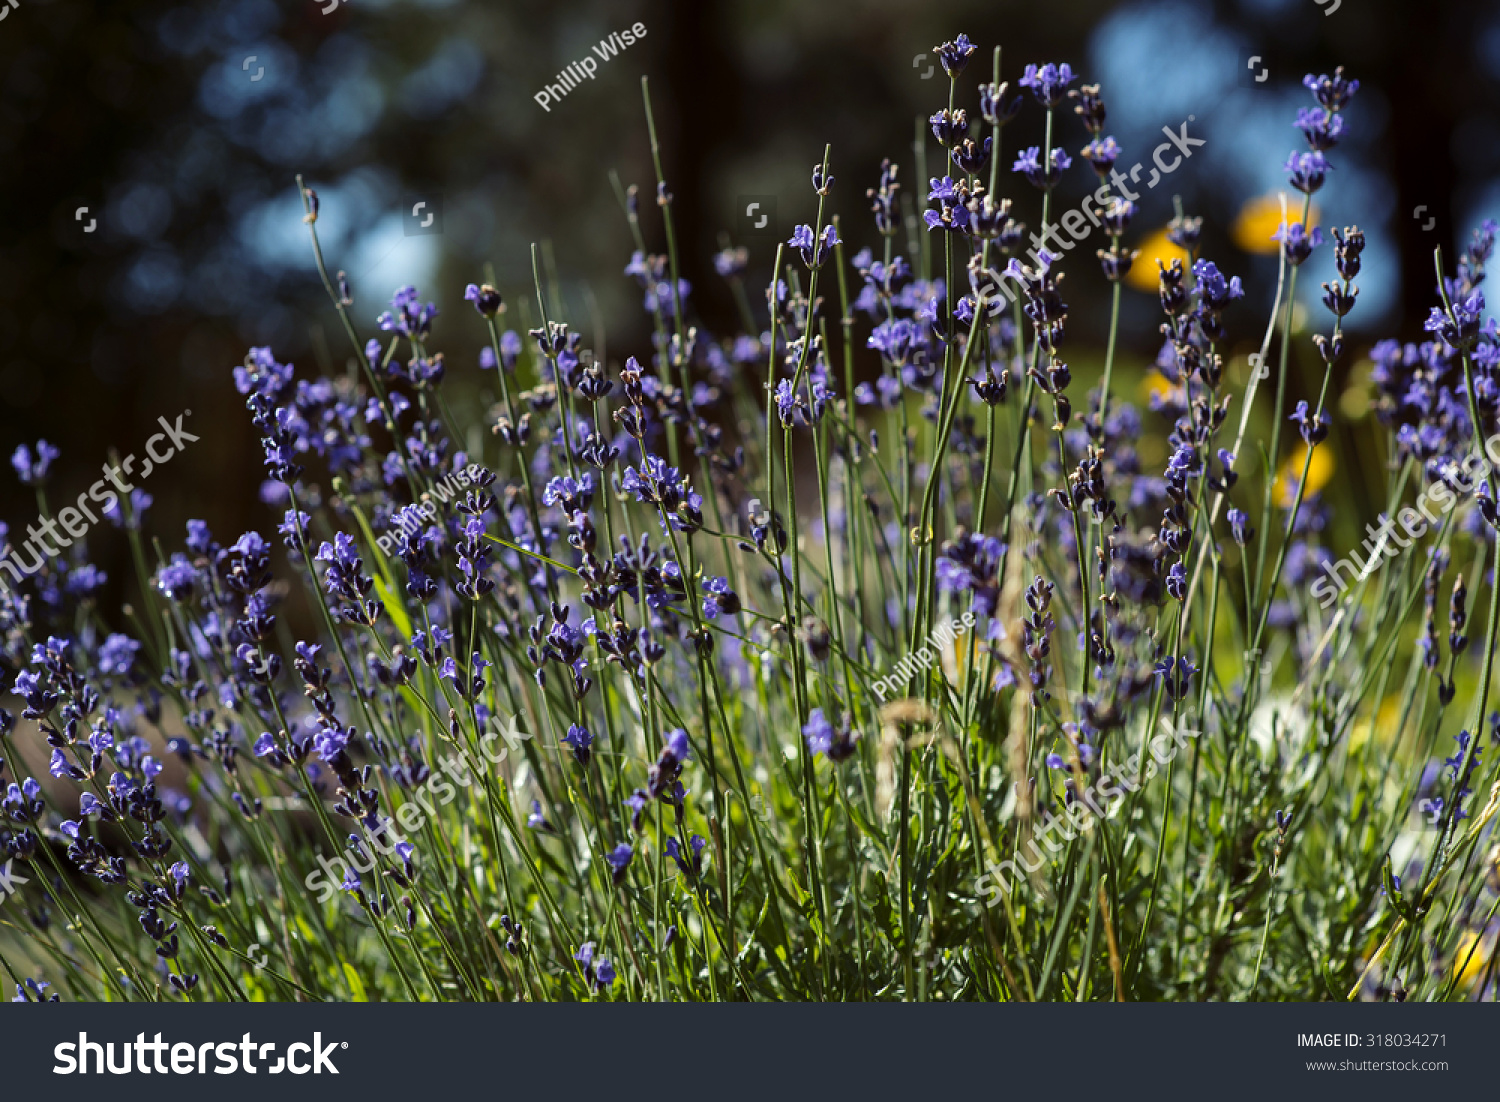 Lavender Plant Purple Flowers Growing Central Stock Photo Royalty